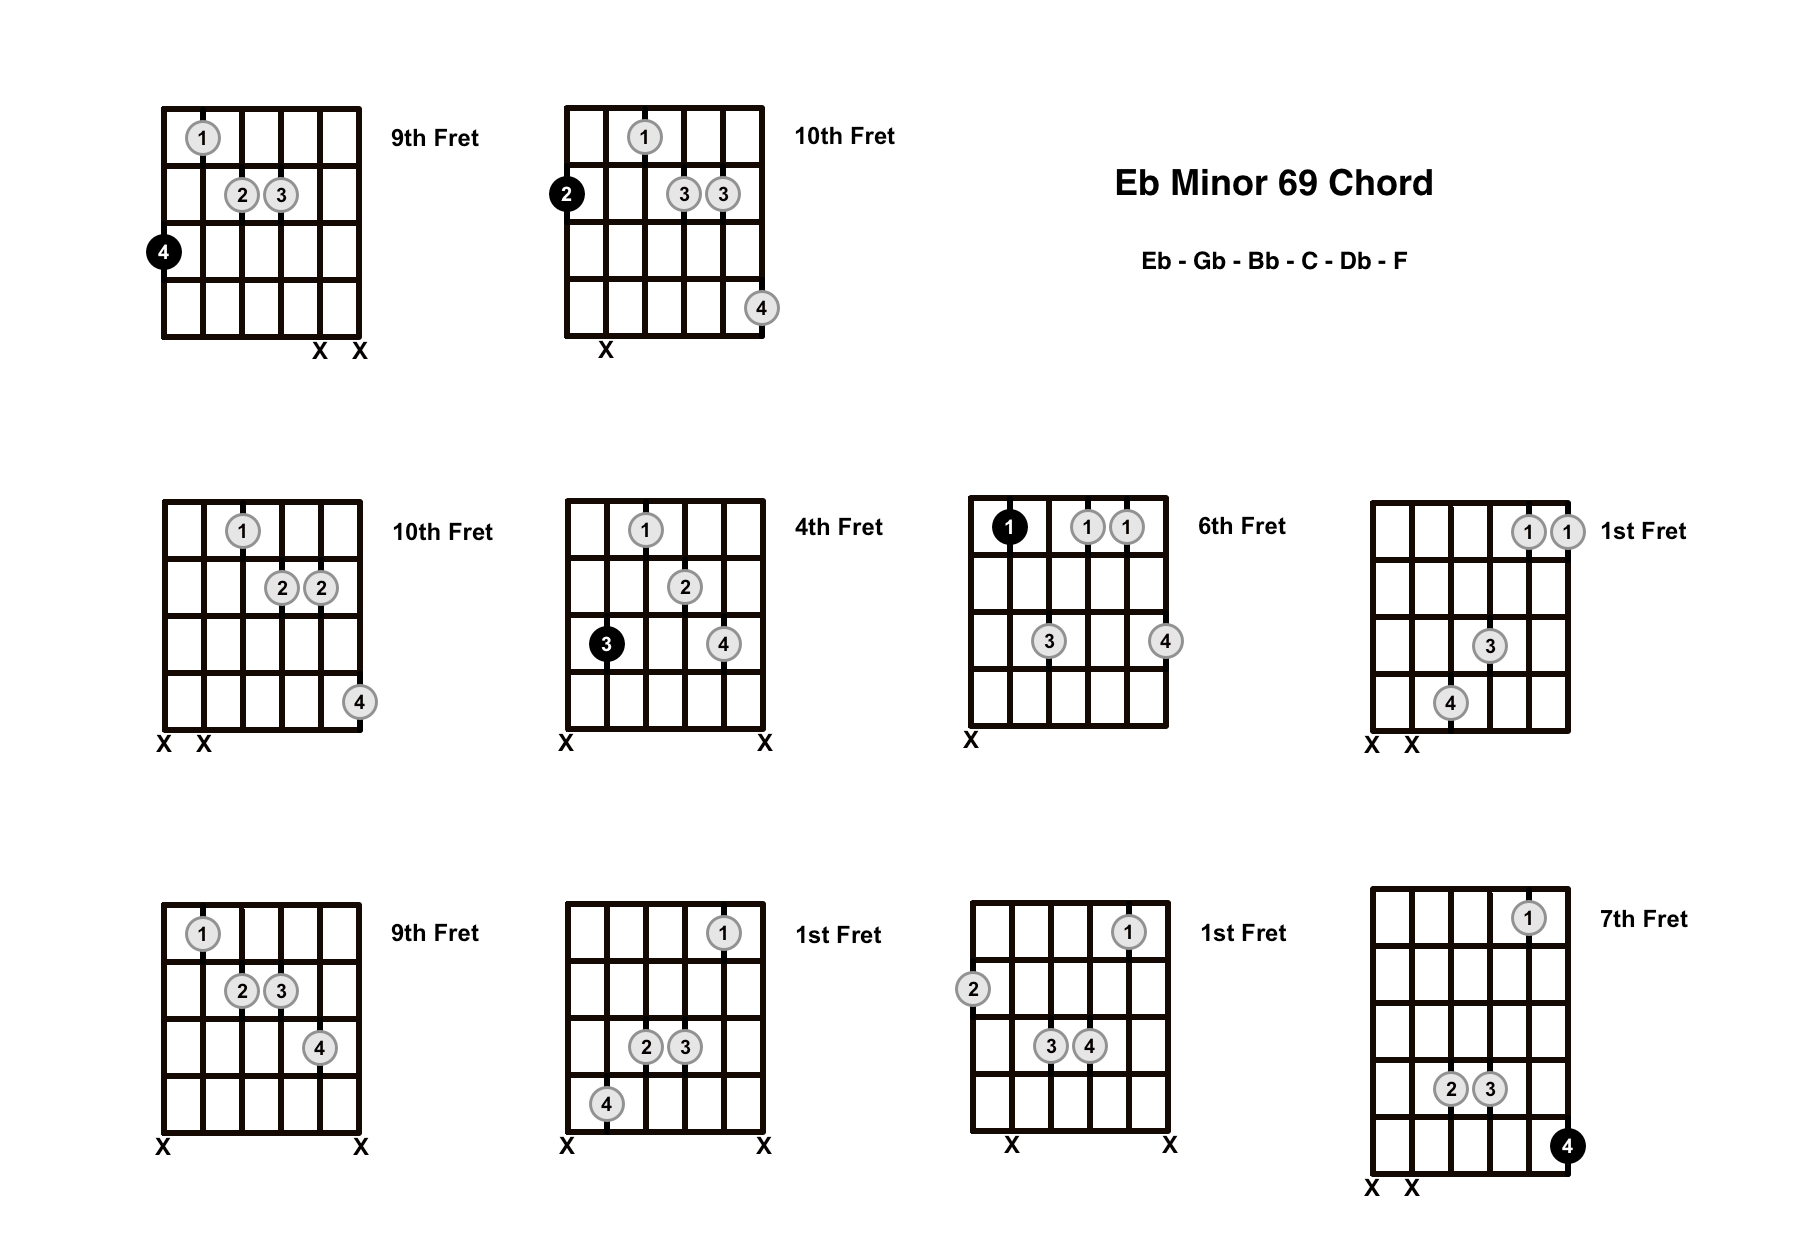 Ebm69 Chord On The Guitar (E Flat Minor 69) – Diagrams, Finger Positions and Theory